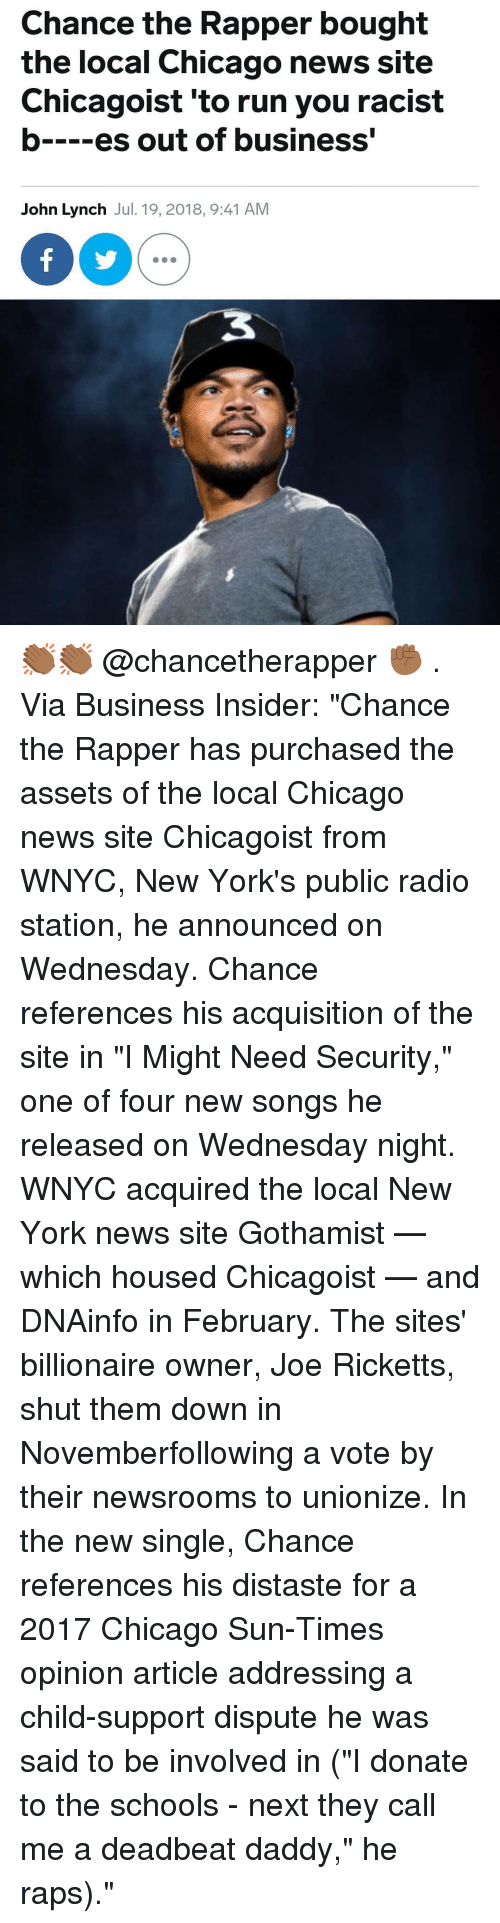 """Chance the Rapper, Chicago, and Child Support: Chance the Rapper bought  the local Chicago news site  Chicagoist 'to run you racist  b es out of business'  John Lynch Jul. 19, 2018, 9:41 AM 👏🏾👏🏾 @chancetherapper ✊🏾 . Via Business Insider: """"Chance the Rapper has purchased the assets of the local Chicago news site Chicagoist from WNYC, New York's public radio station, he announced on Wednesday. Chance references his acquisition of the site in """"I Might Need Security,"""" one of four new songs he released on Wednesday night. WNYC acquired the local New York news site Gothamist — which housed Chicagoist — and DNAinfo in February. The sites' billionaire owner, Joe Ricketts, shut them down in Novemberfollowing a vote by their newsrooms to unionize. In the new single, Chance references his distaste for a 2017 Chicago Sun-Times opinion article addressing a child-support dispute he was said to be involved in (""""I donate to the schools - next they call me a deadbeat daddy,"""" he raps)."""""""